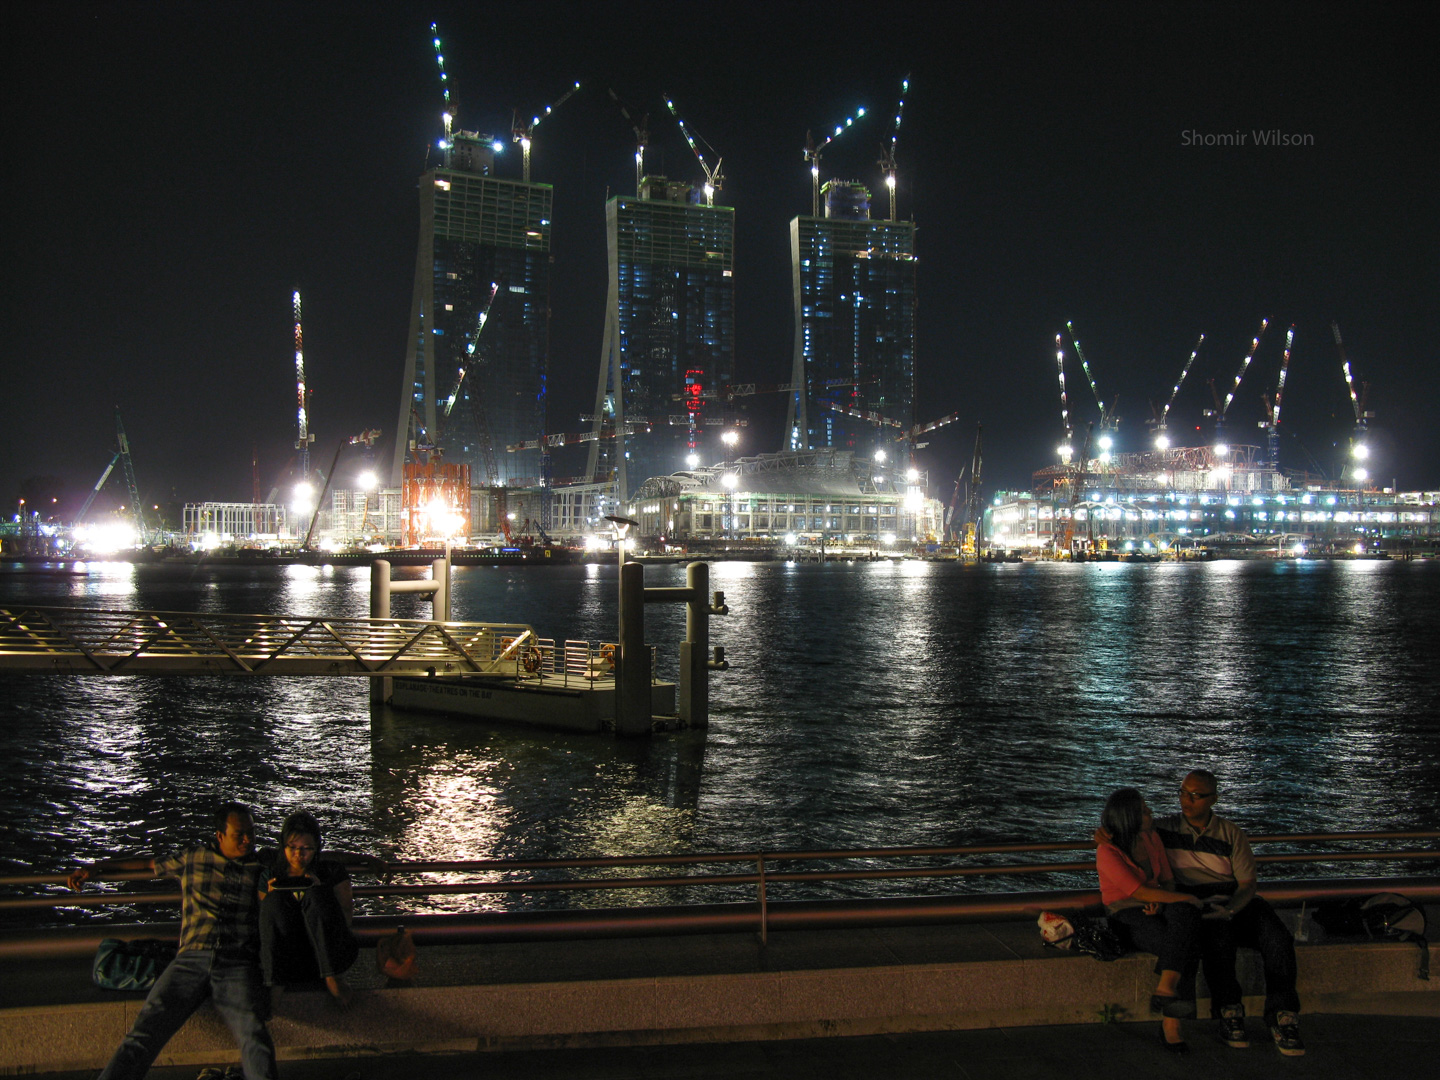 Brightly lit construction site across the water from the foreground, in which two couples canoodle